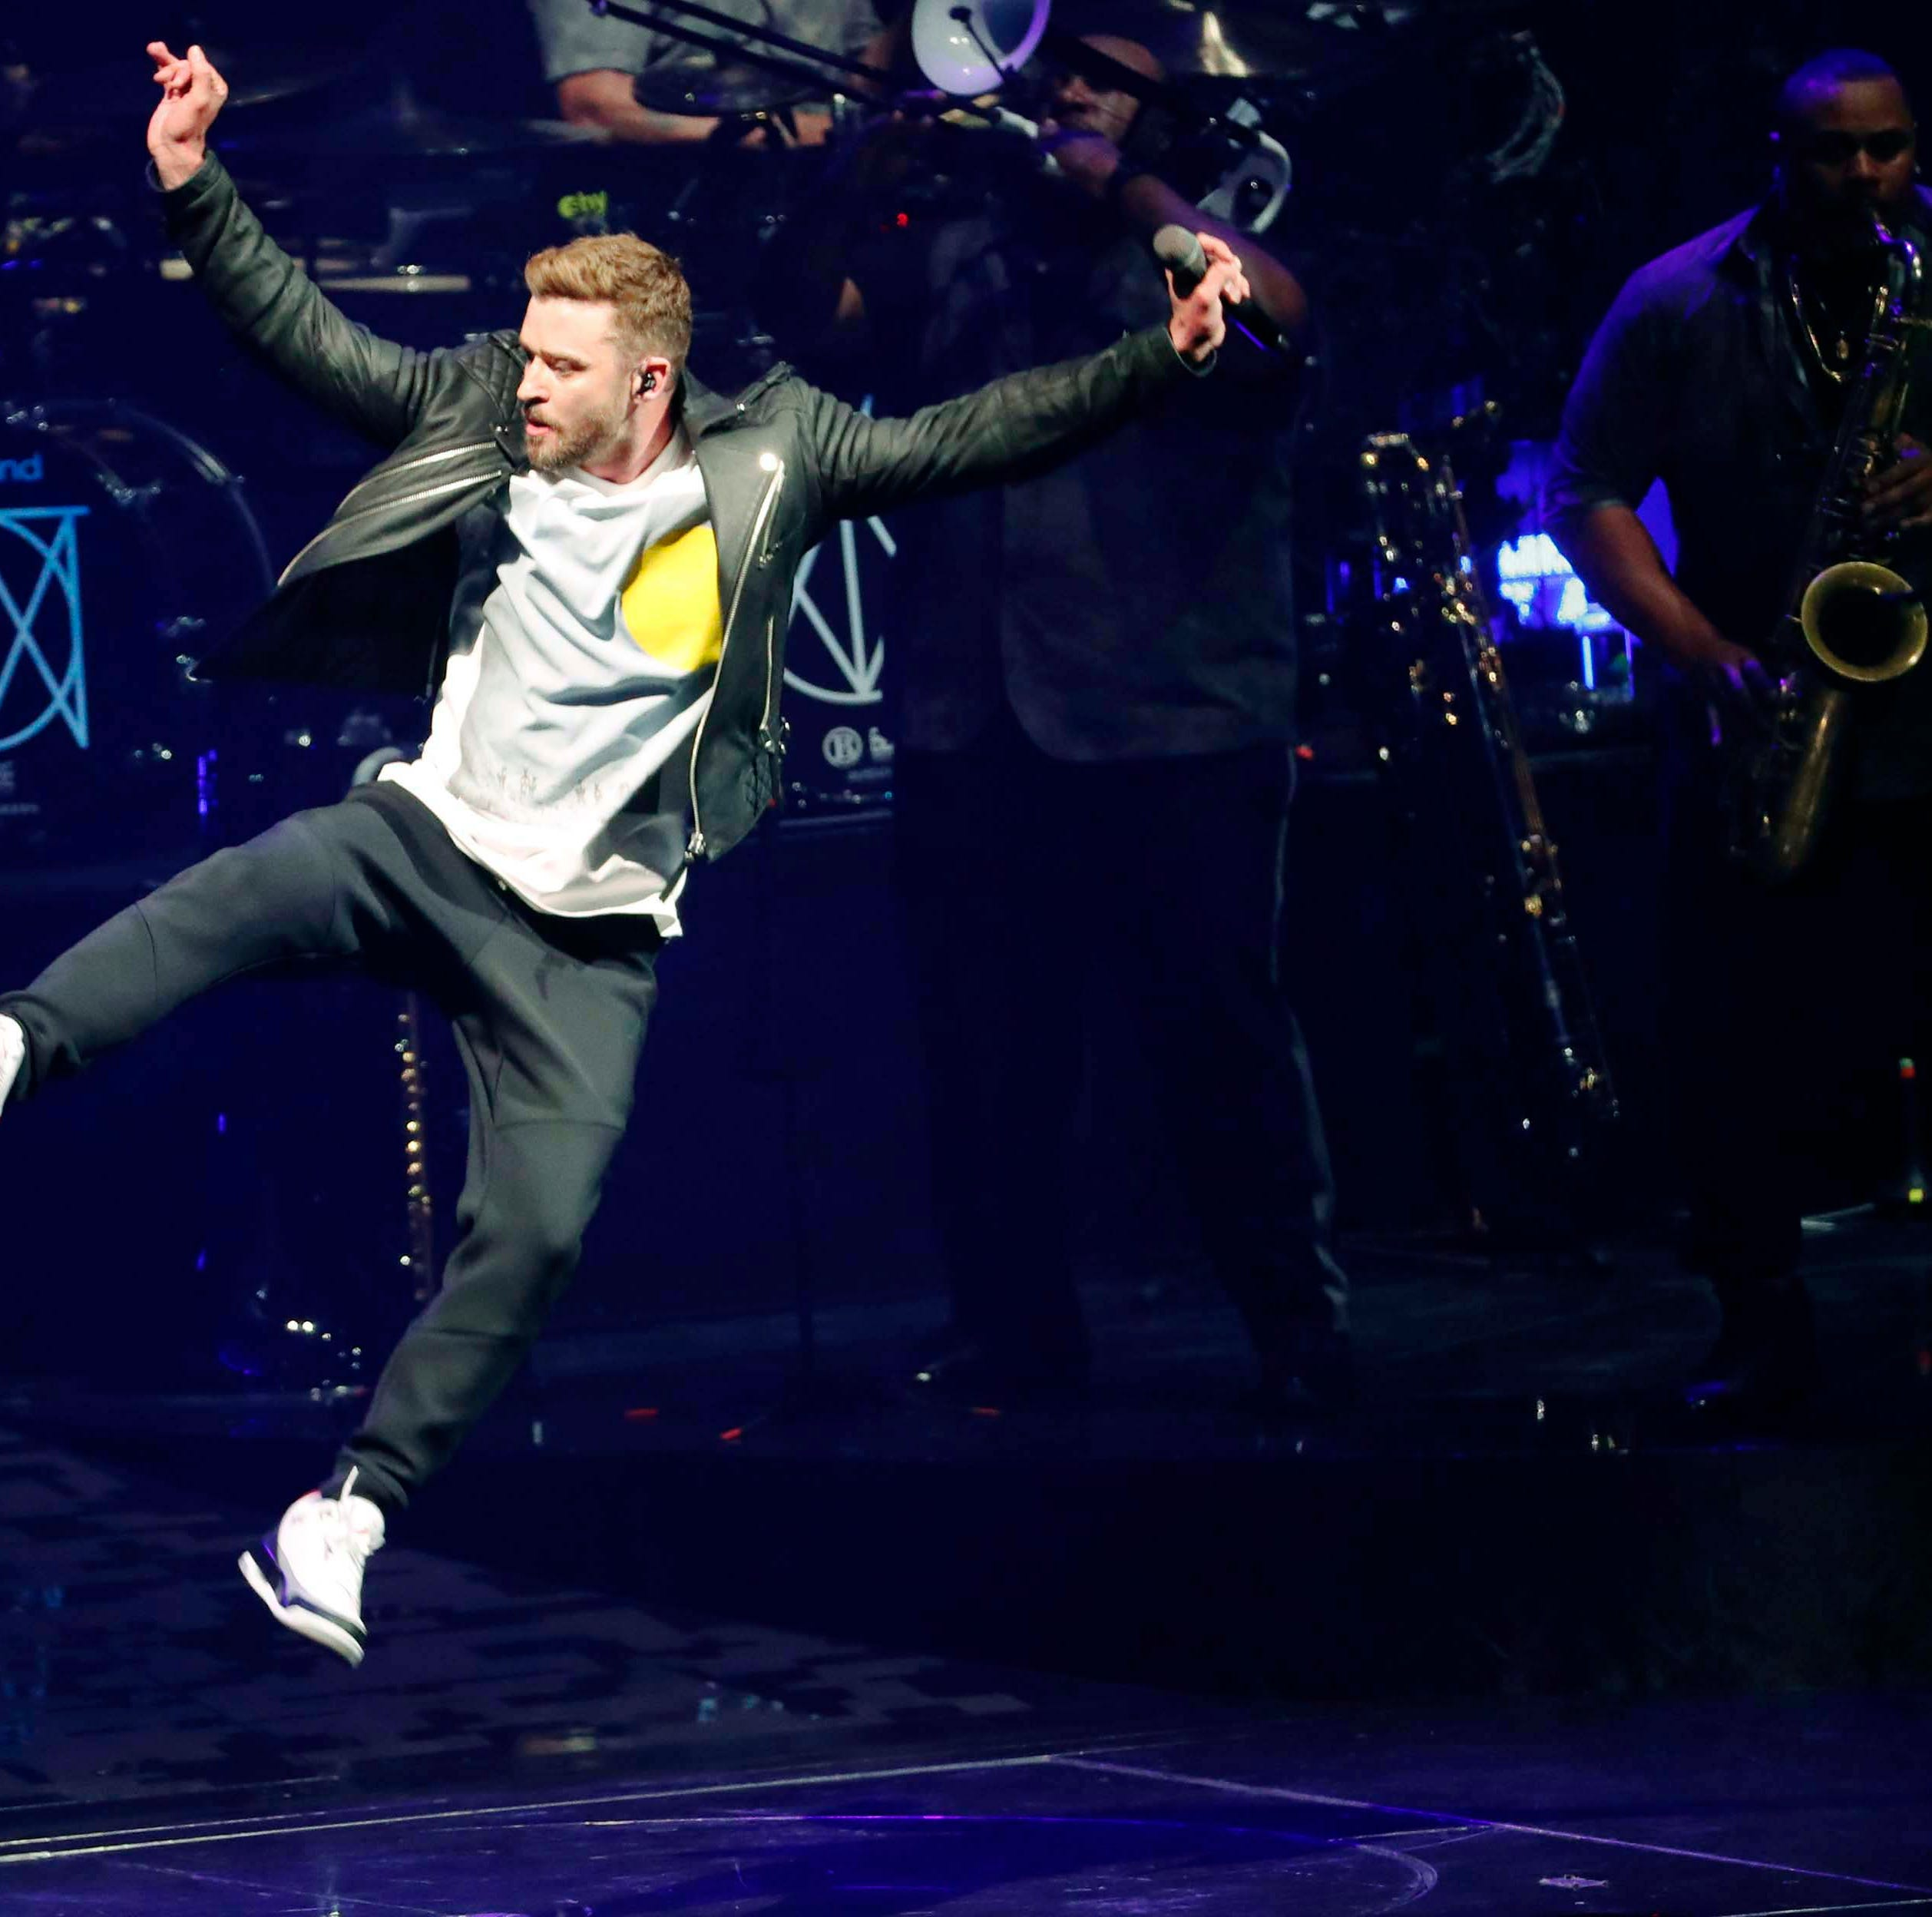 Justin Timberlake celebrates 100th show of his Man of the Woods Tour in Phoenix